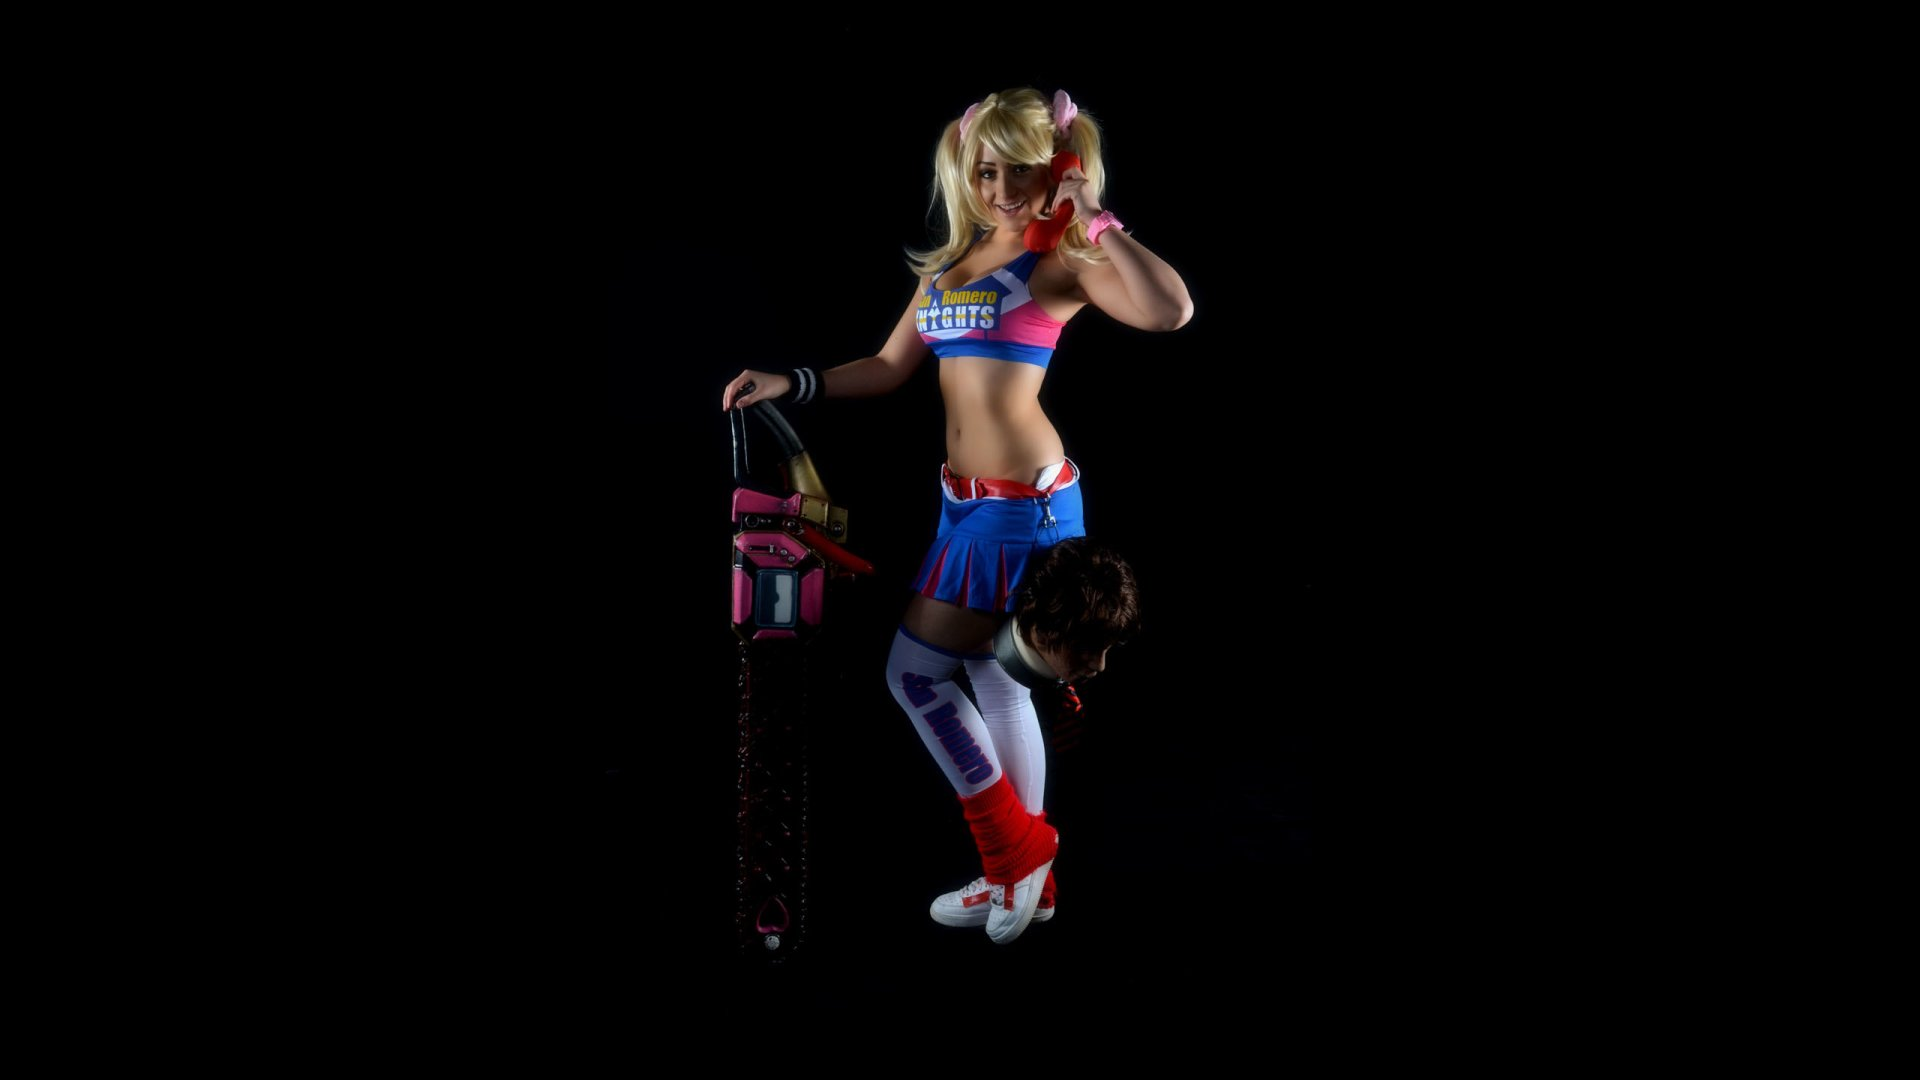 lollipop chainsaw full hd wallpaper and background